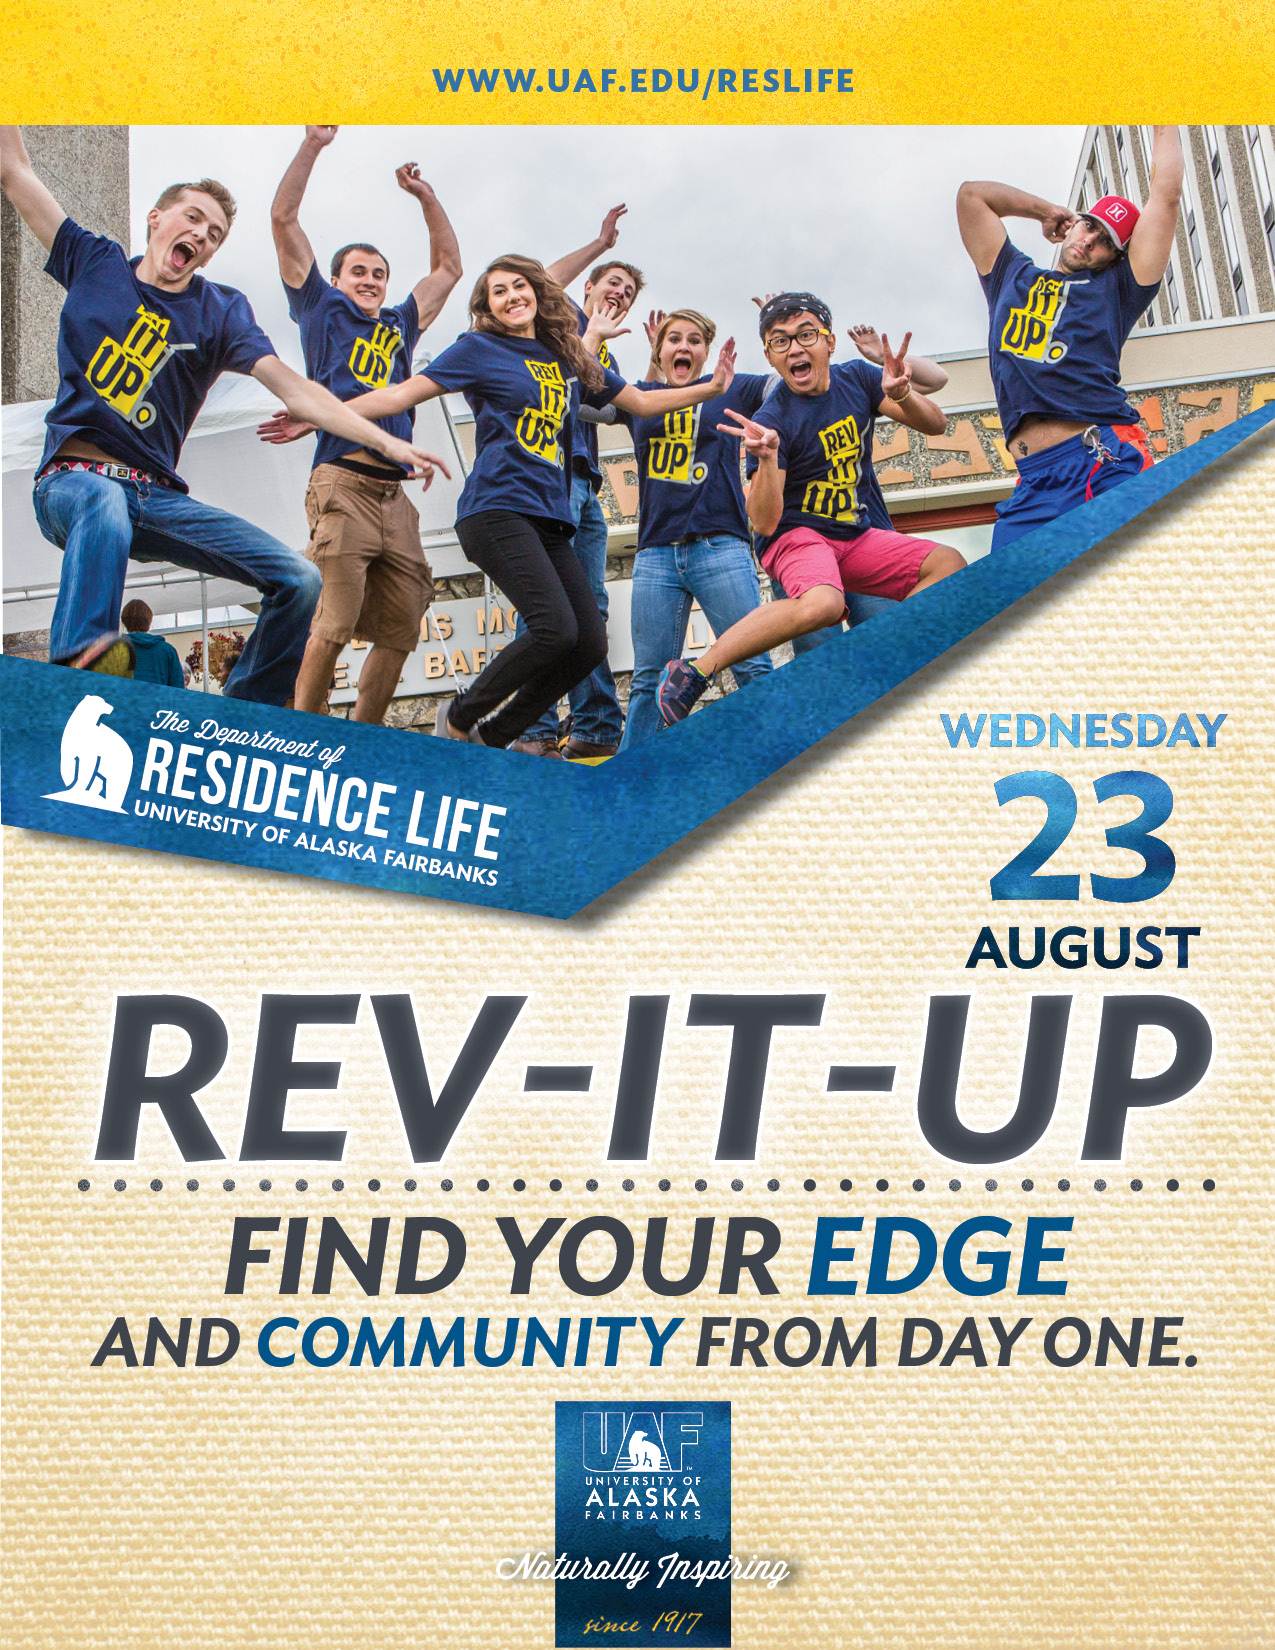 /reslife/images/Rev-it-up.jpg